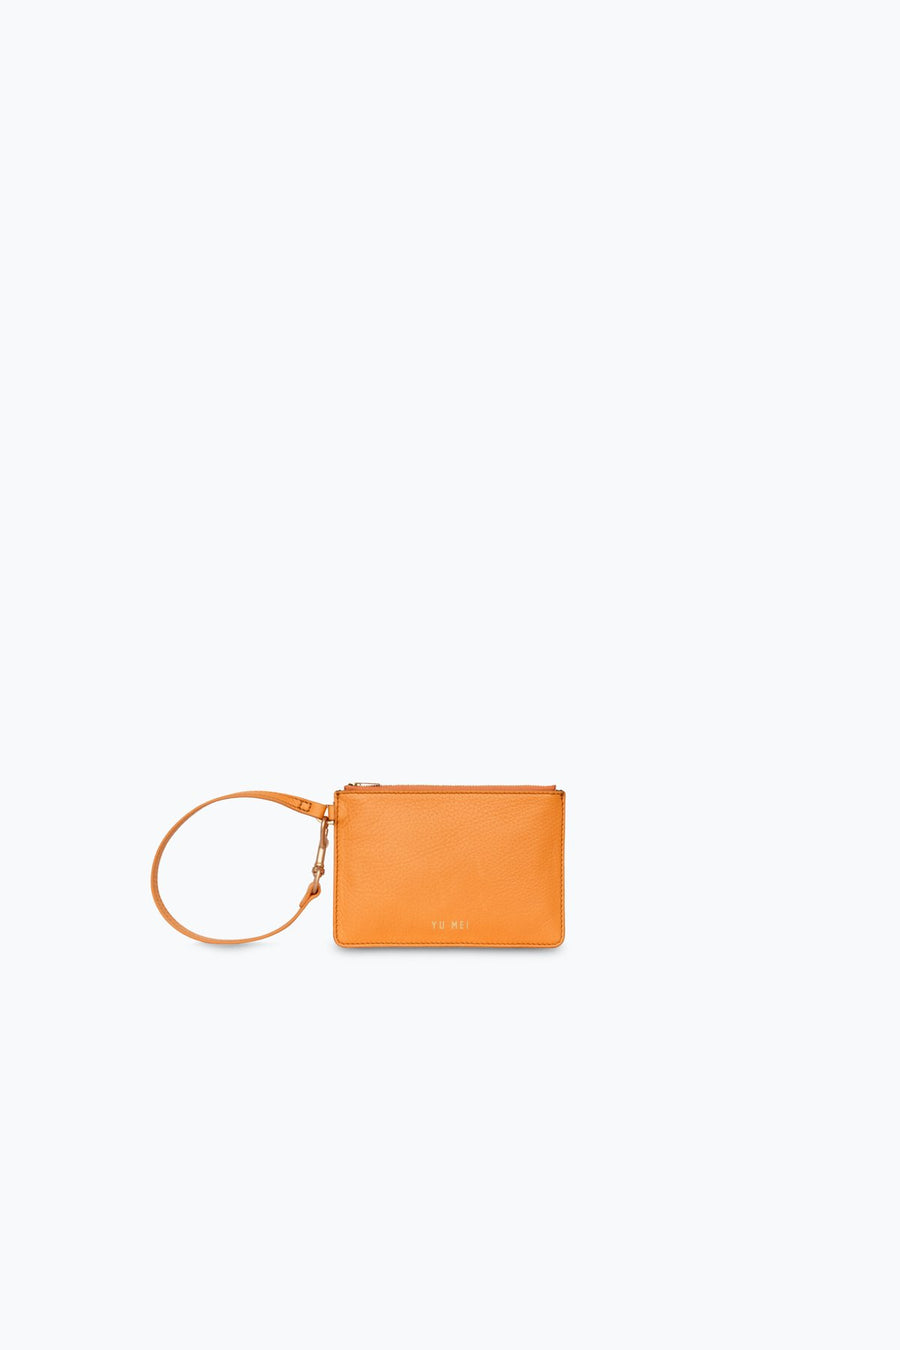 Amy clutch orange yu mei